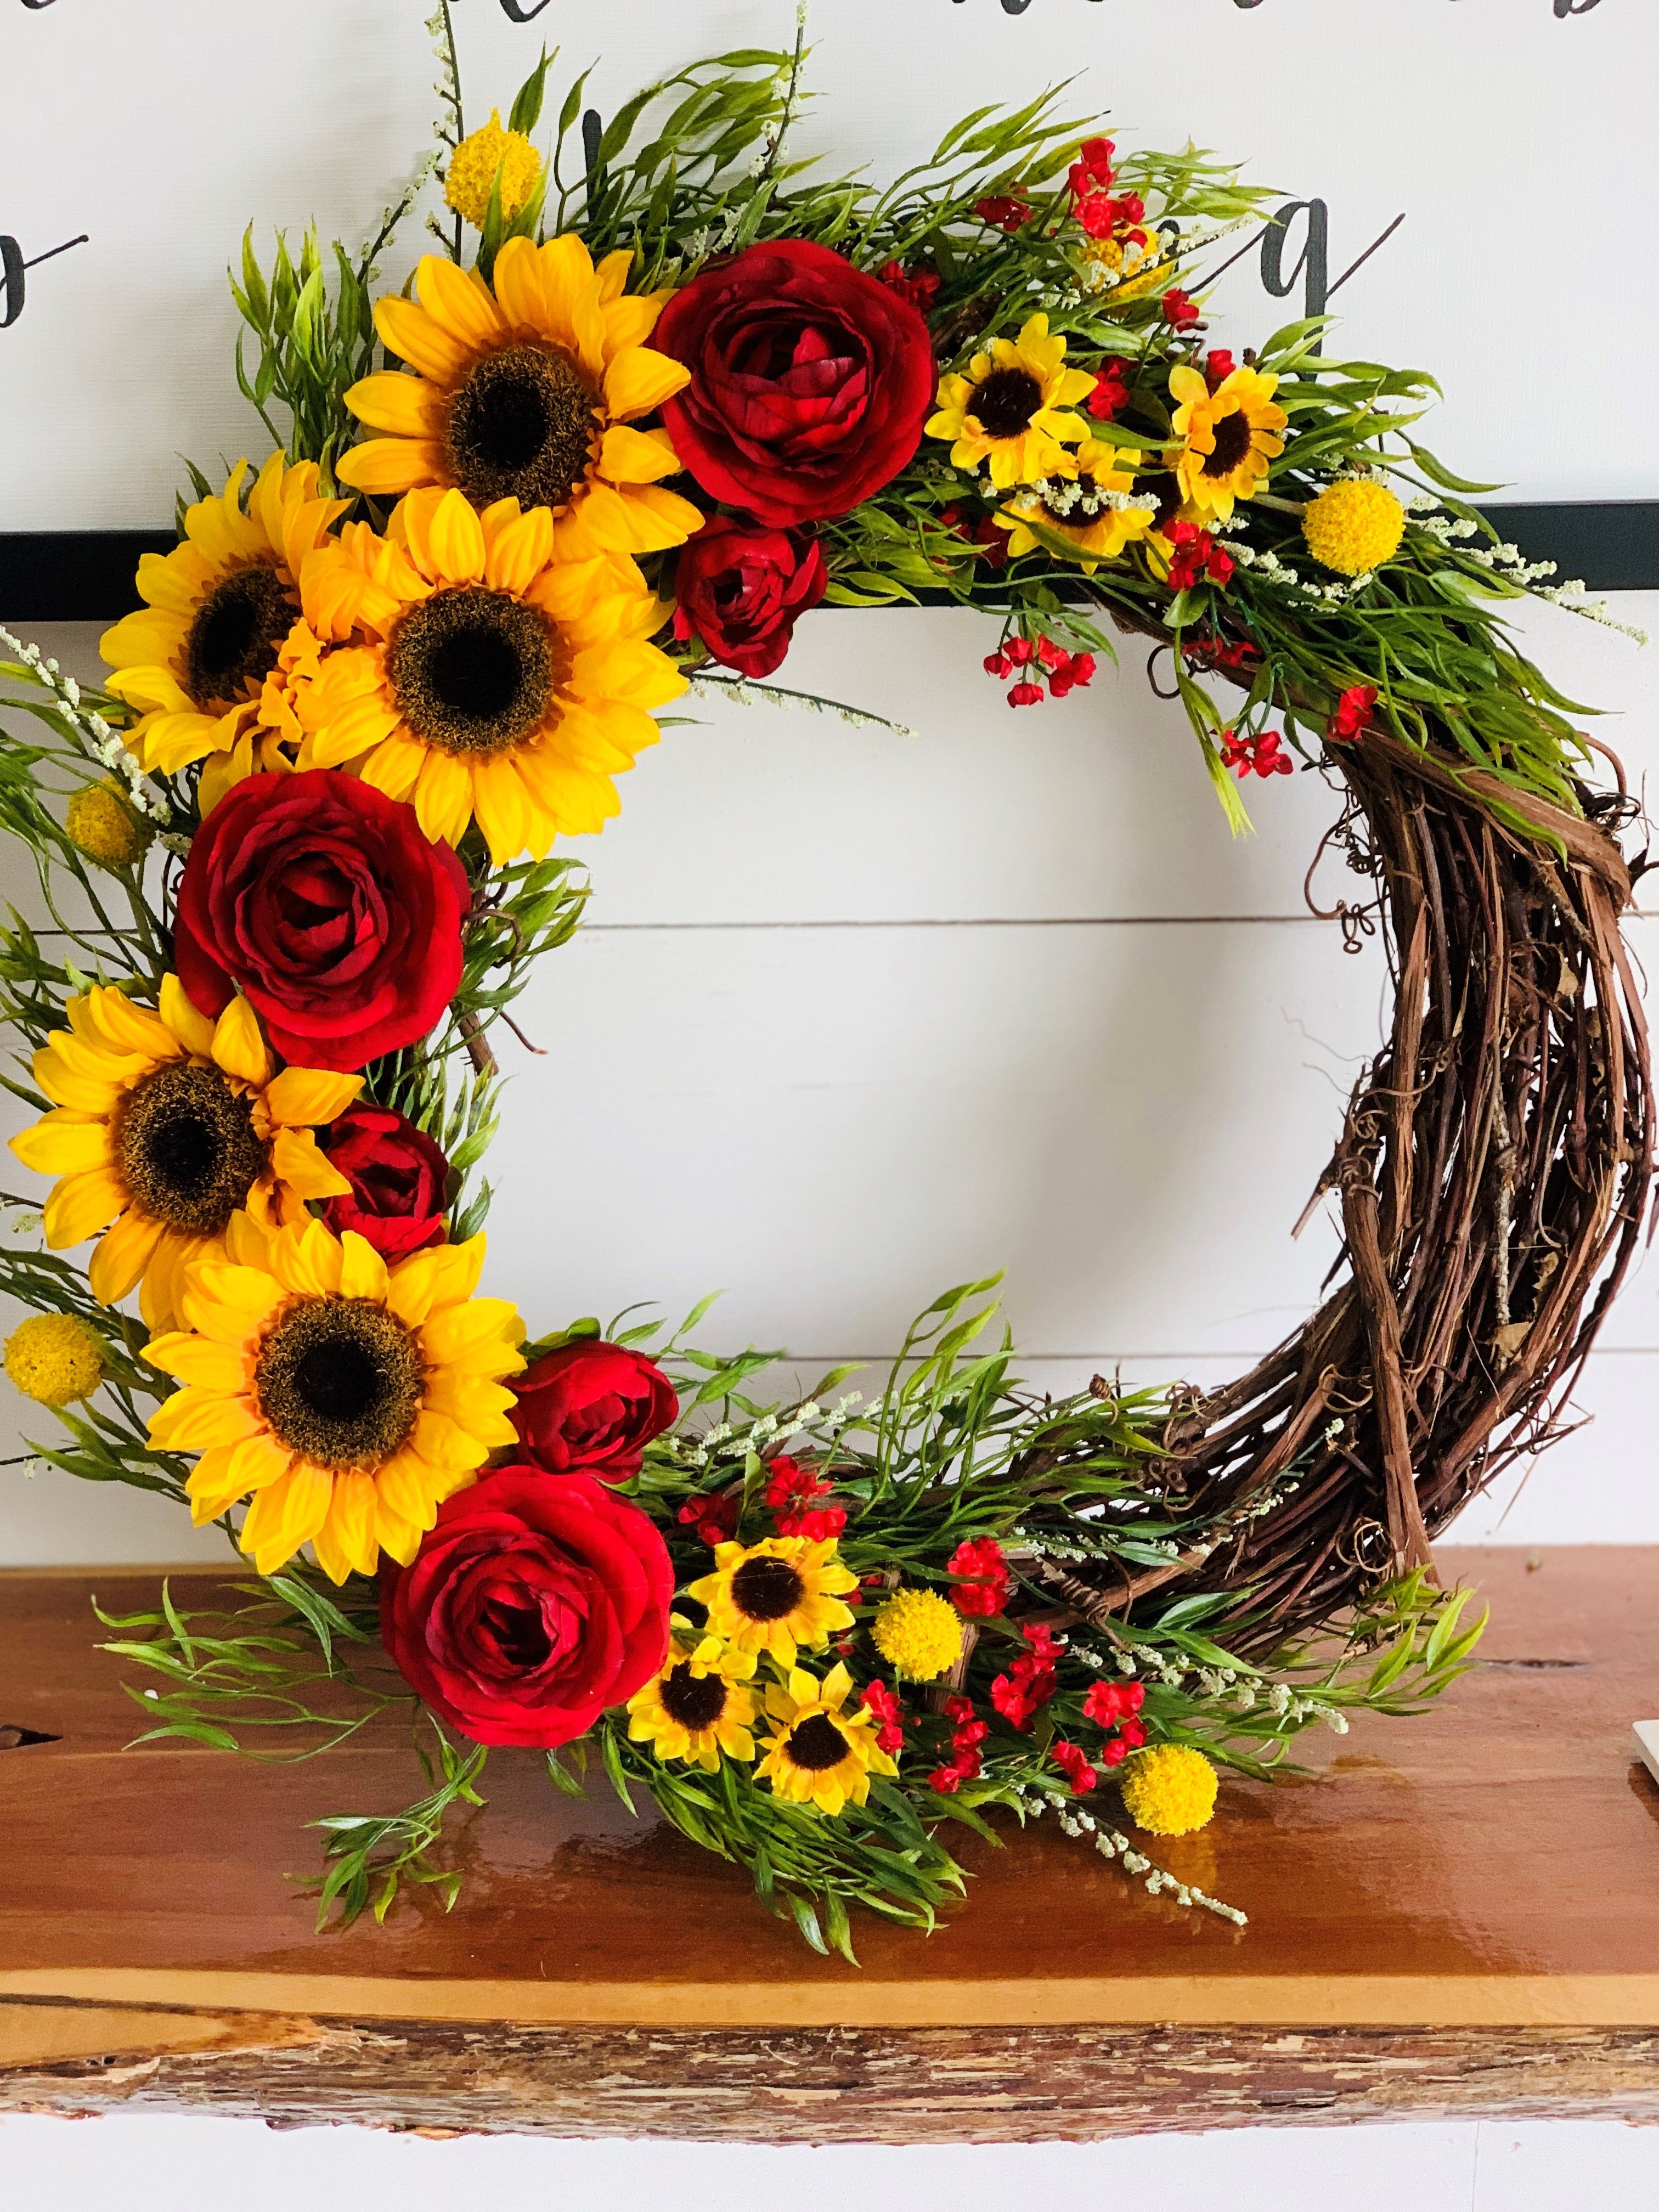 Sunflower And Rose Wreath Sunflower Wreath Diy Sunflowers And Roses Wreath Crafts